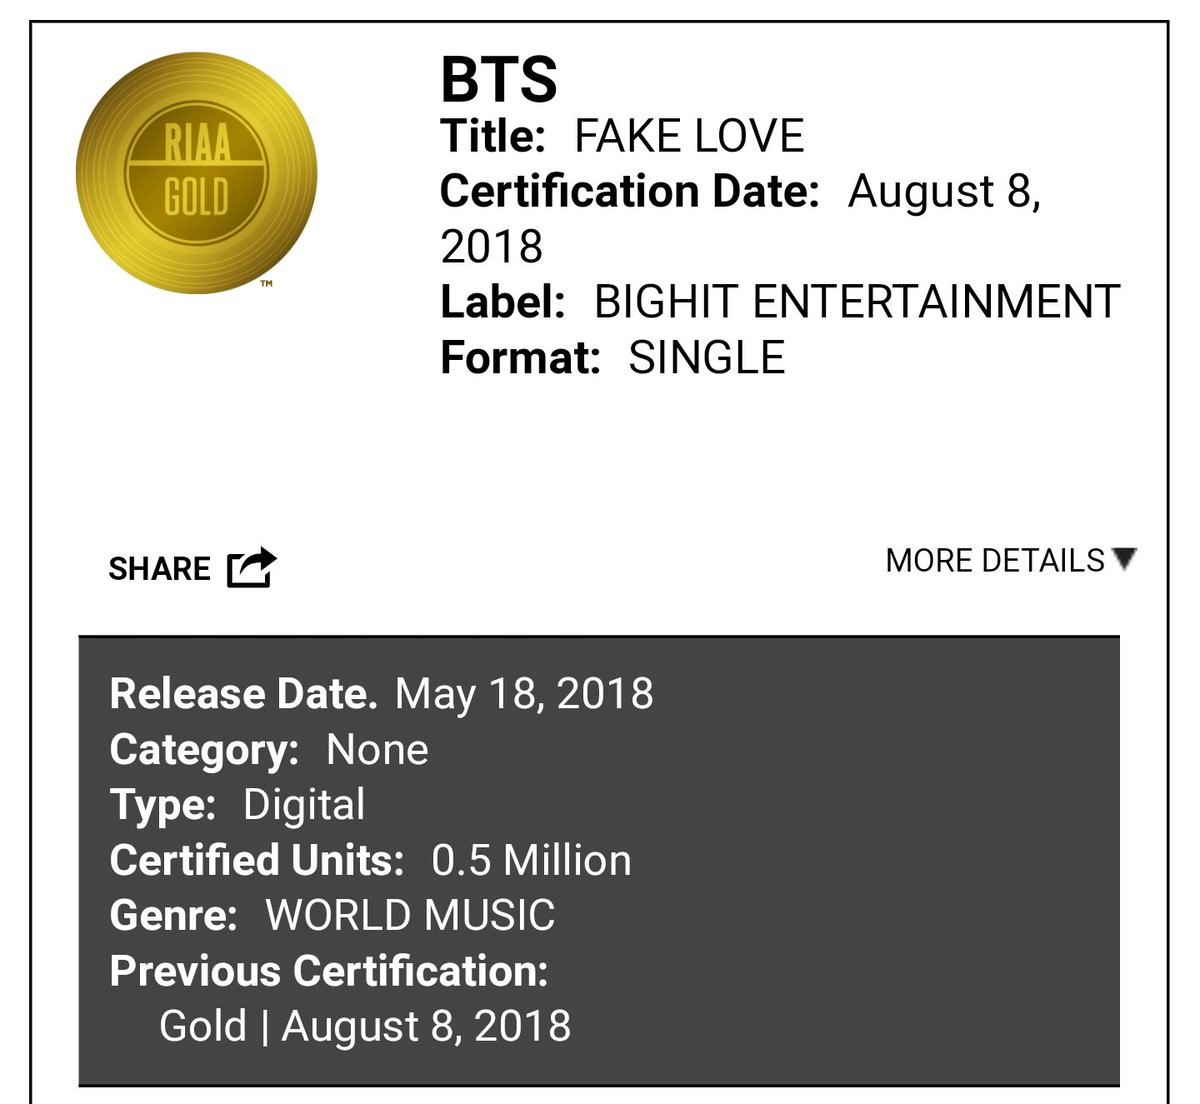 #FakeLoveWentGold  I couldn&#39;t be more proud of BTS and ARMYs right now. Teamwork makes the dream work! <br>http://pic.twitter.com/mxtA3u5esg